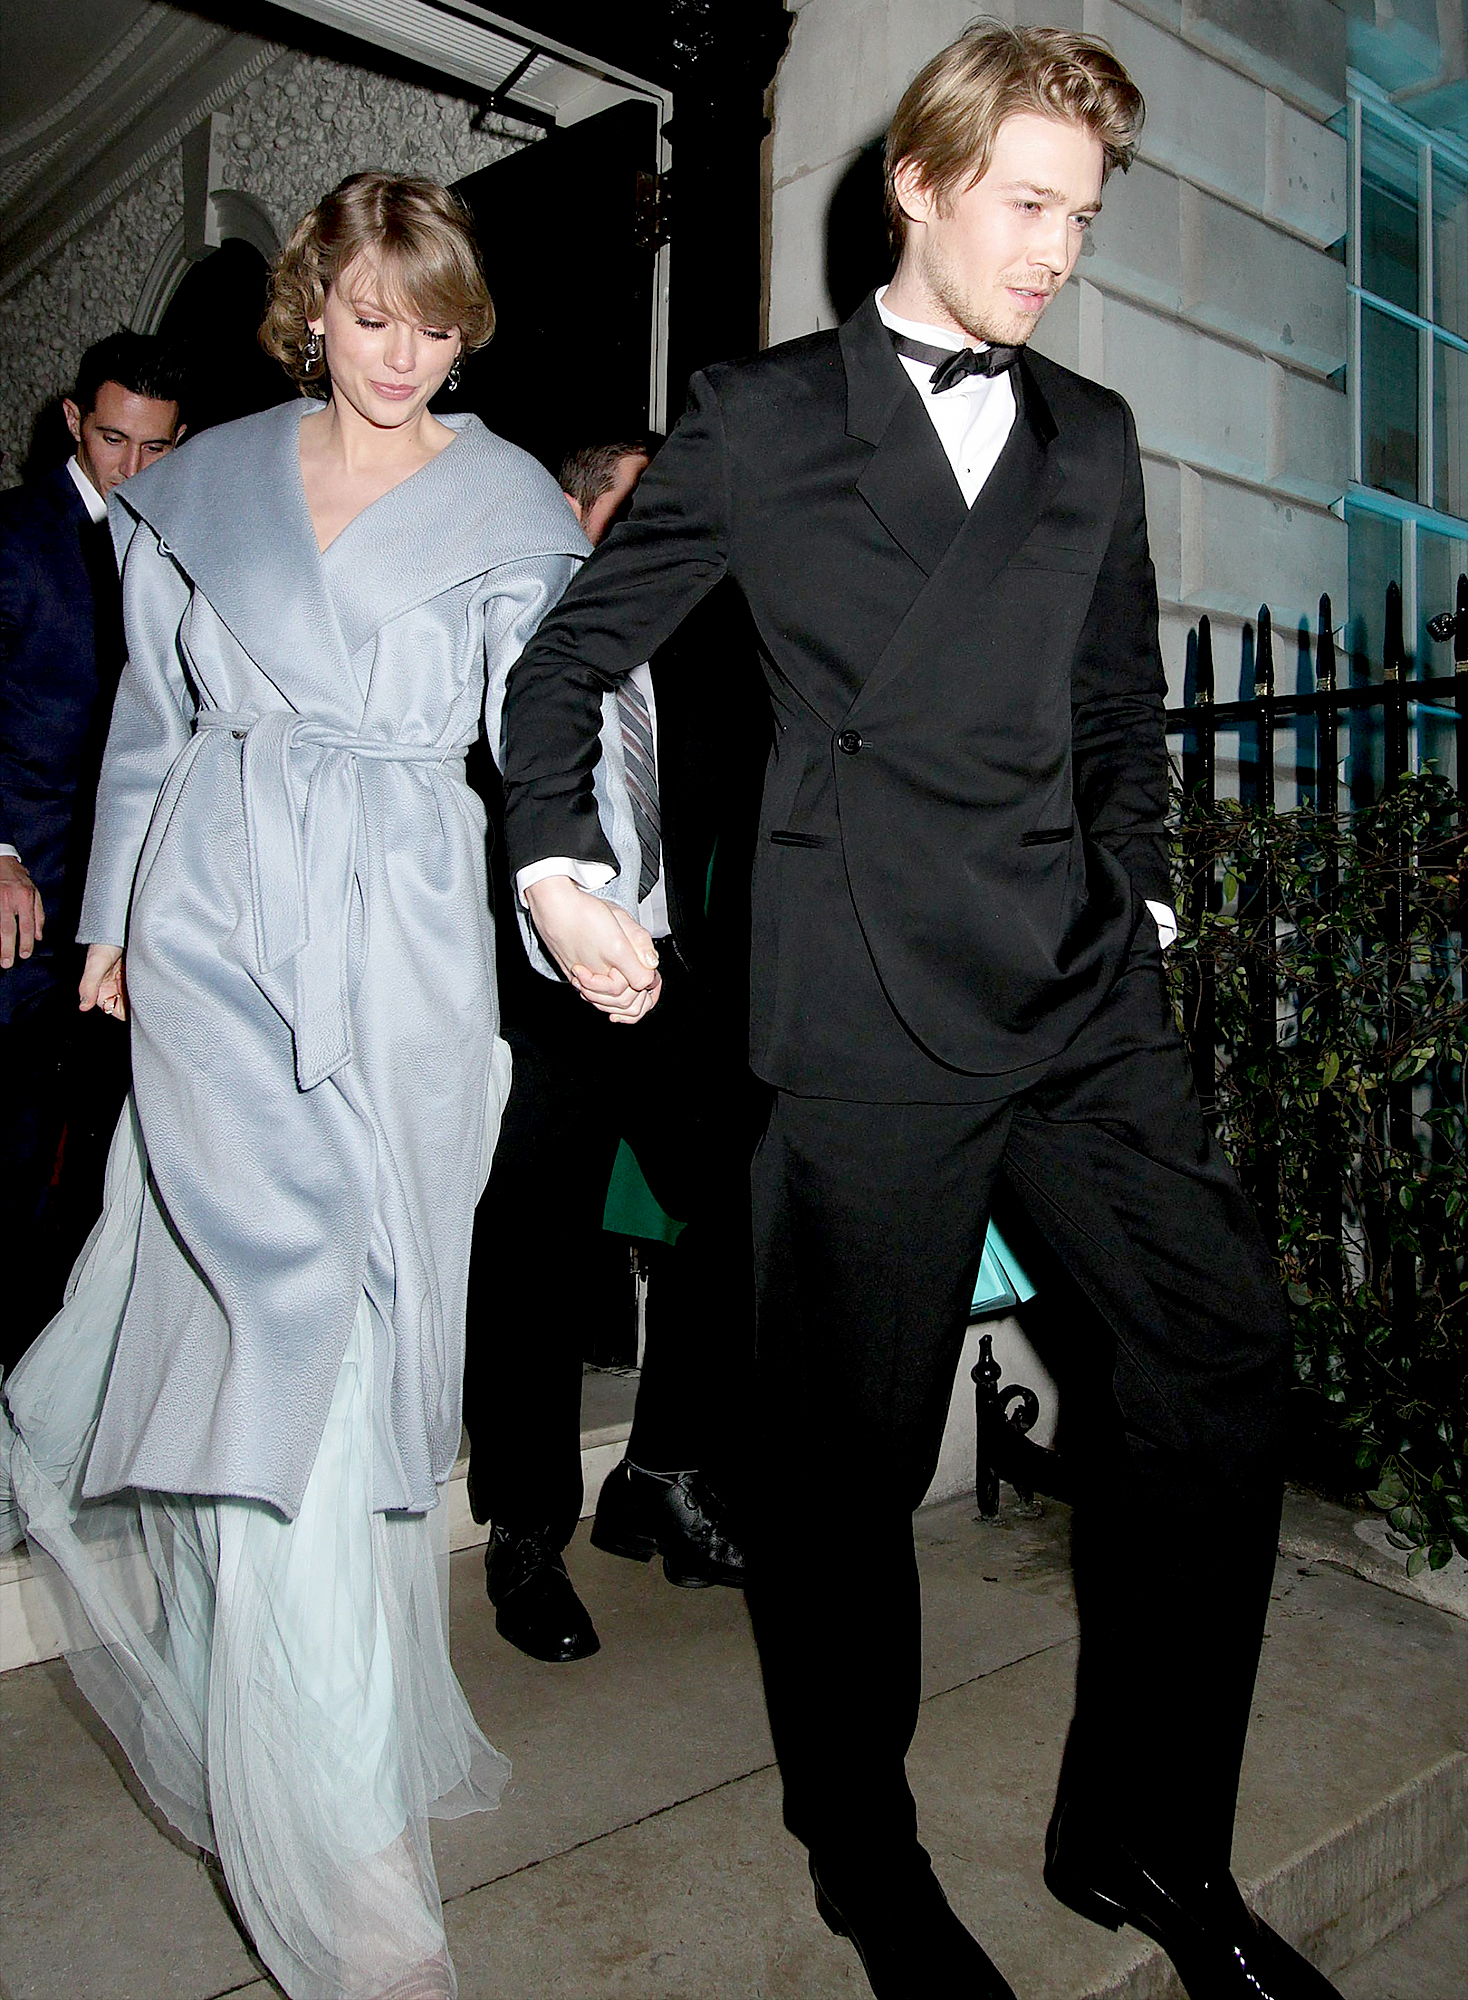 Taylor-Swift-Joe-Alwyn-bafta-after-party-1 - Alwyn walked a step in front of Swift as he guided her down a flight of stairs by holding her hand.